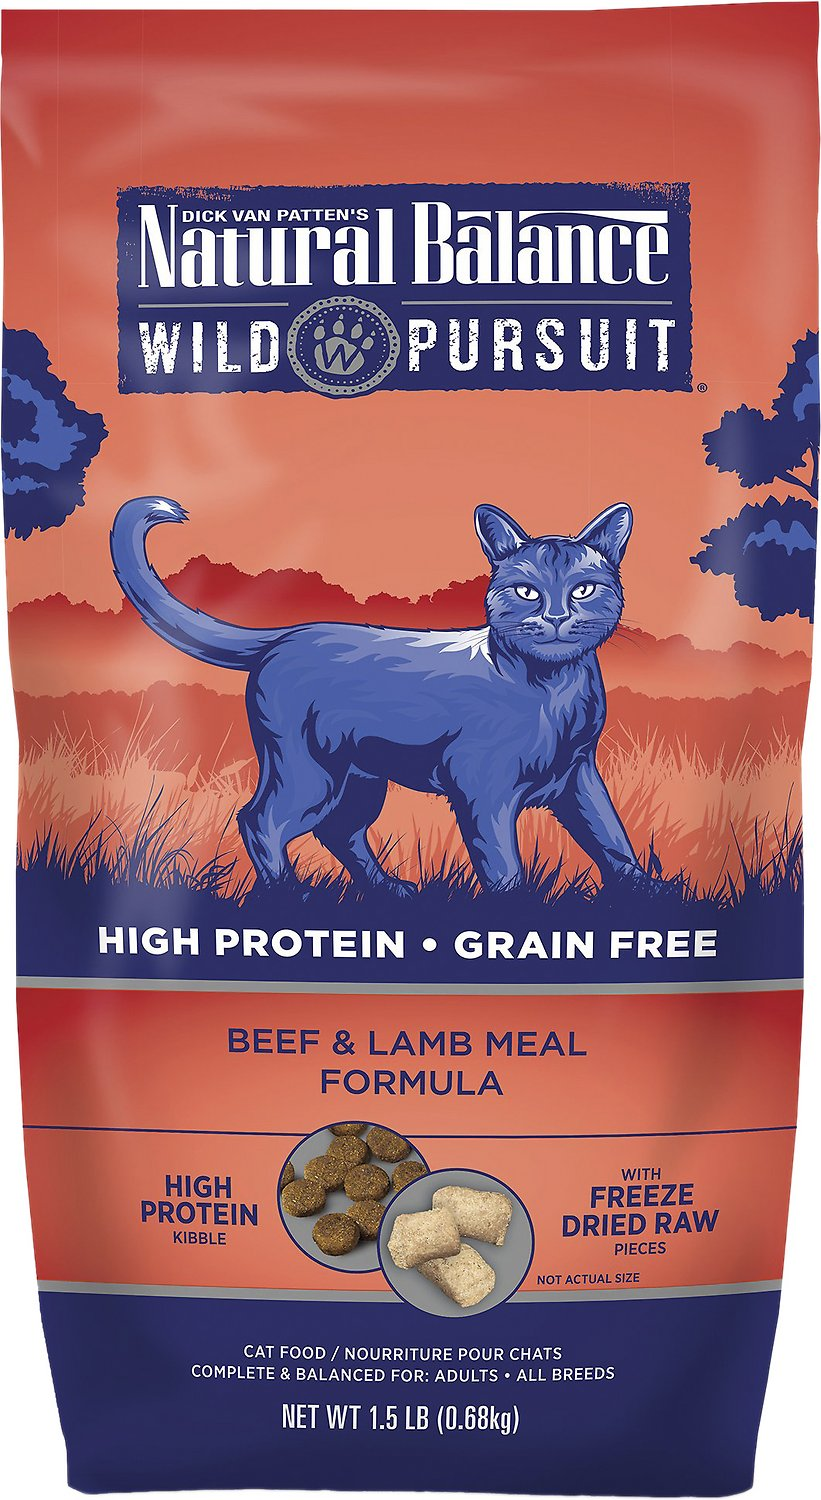 Natural Balance Wild Pursuit Dry Cat Food